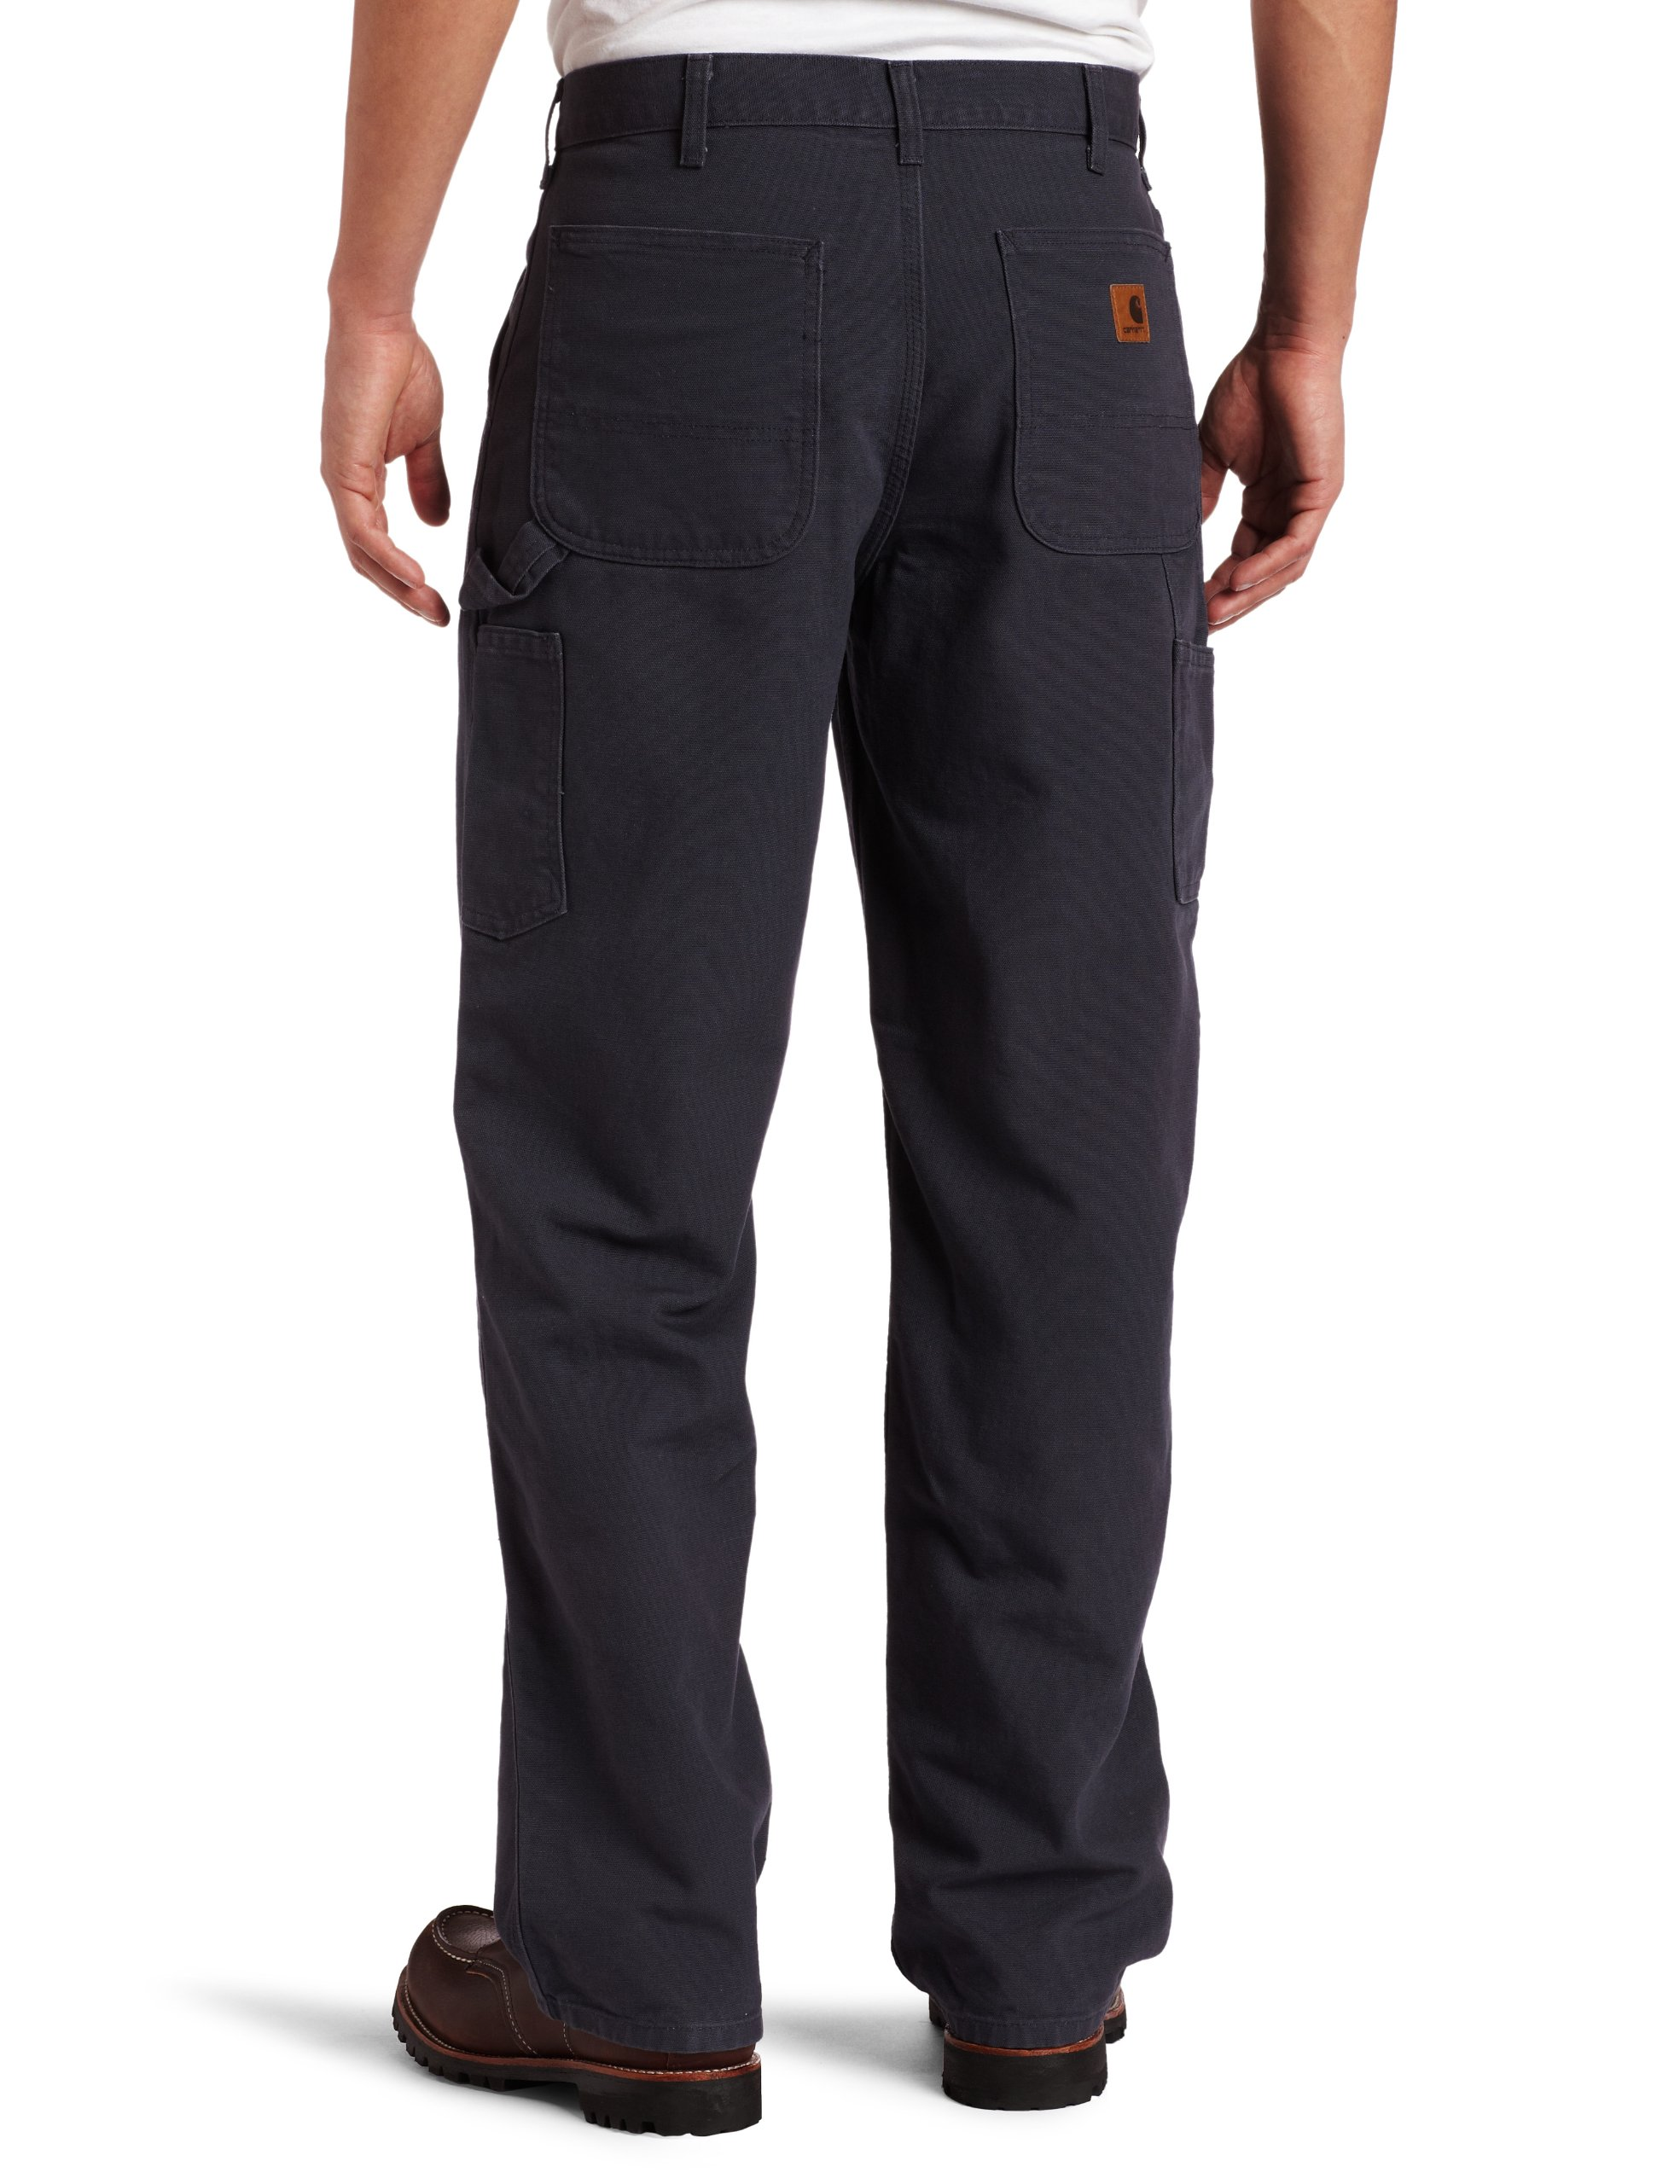 Carhartt Men's Washed Duck Work Dungaree Pant,Petrol Blue,44W x 30L by Carhartt (Image #2)